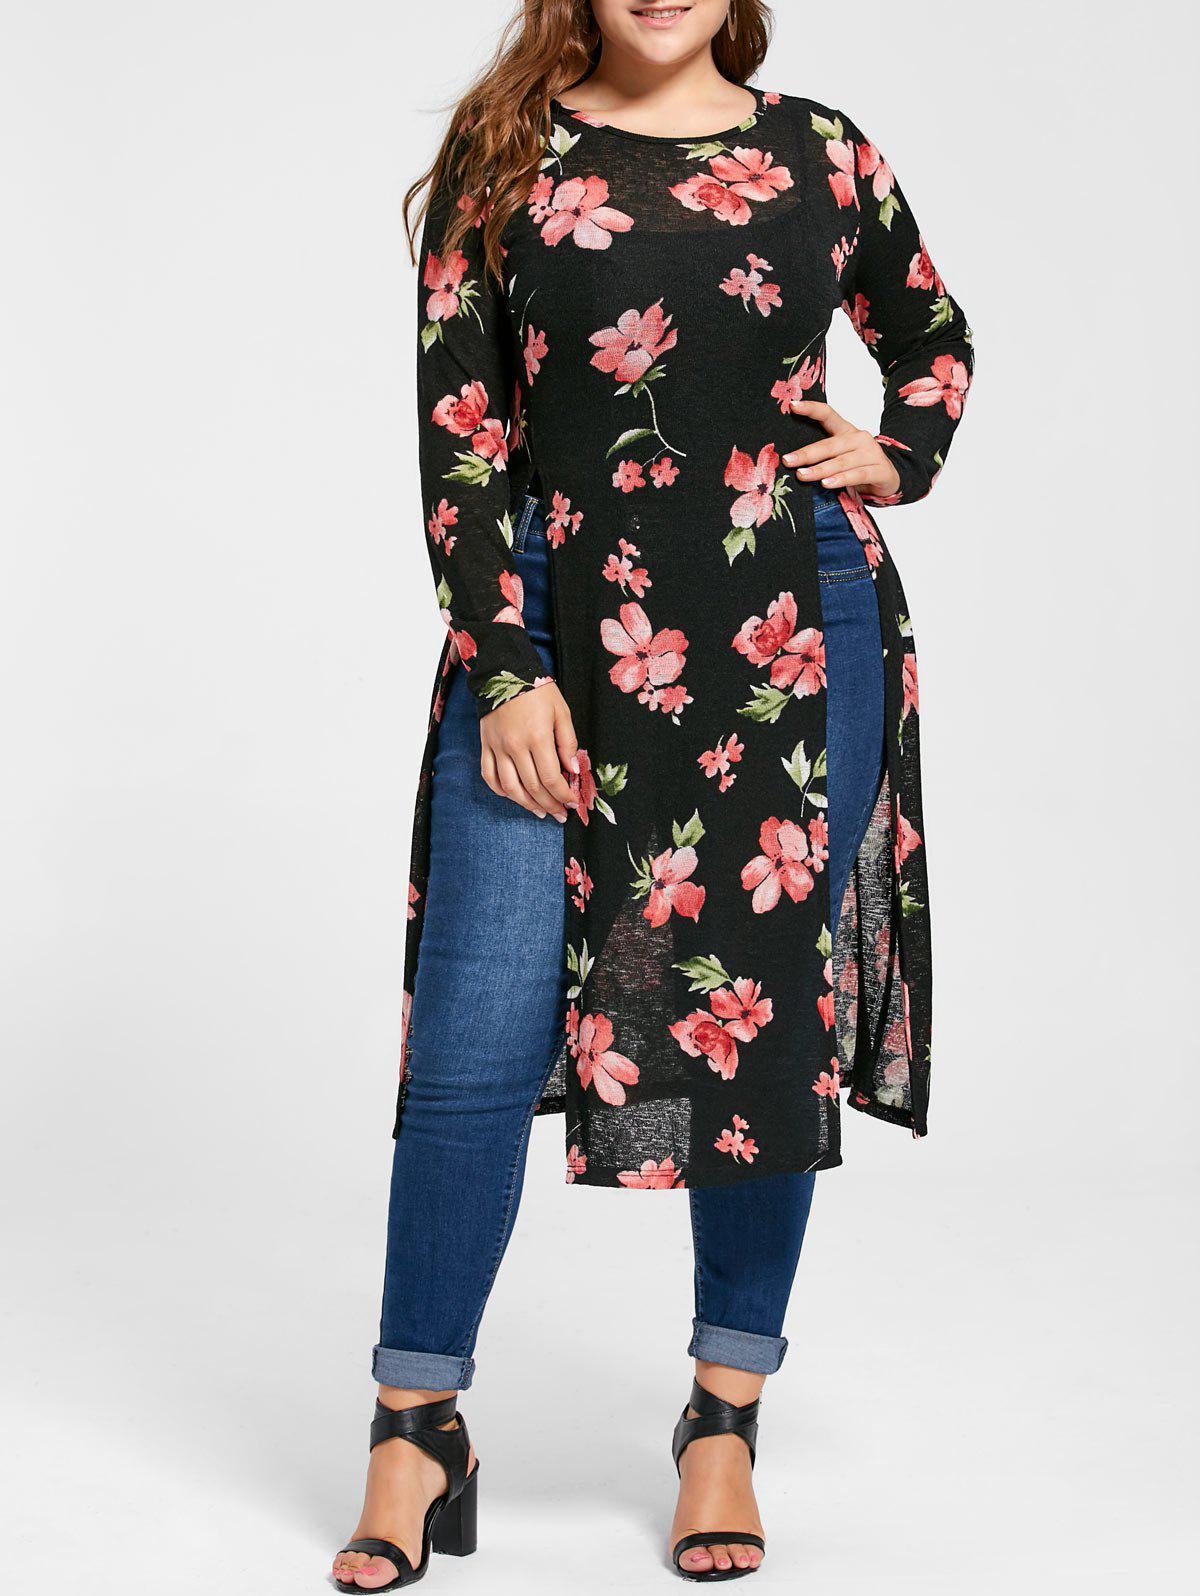 Plus Size Floral High Slit Longline TeeWOMEN<br><br>Size: 4XL; Color: BLACK; Material: Polyester; Shirt Length: Long; Sleeve Length: Full; Collar: Round Neck; Style: Fashion; Season: Fall,Spring,Summer; Pattern Type: Floral; Weight: 0.3200kg; Package Contents: 1 x T-shirt;